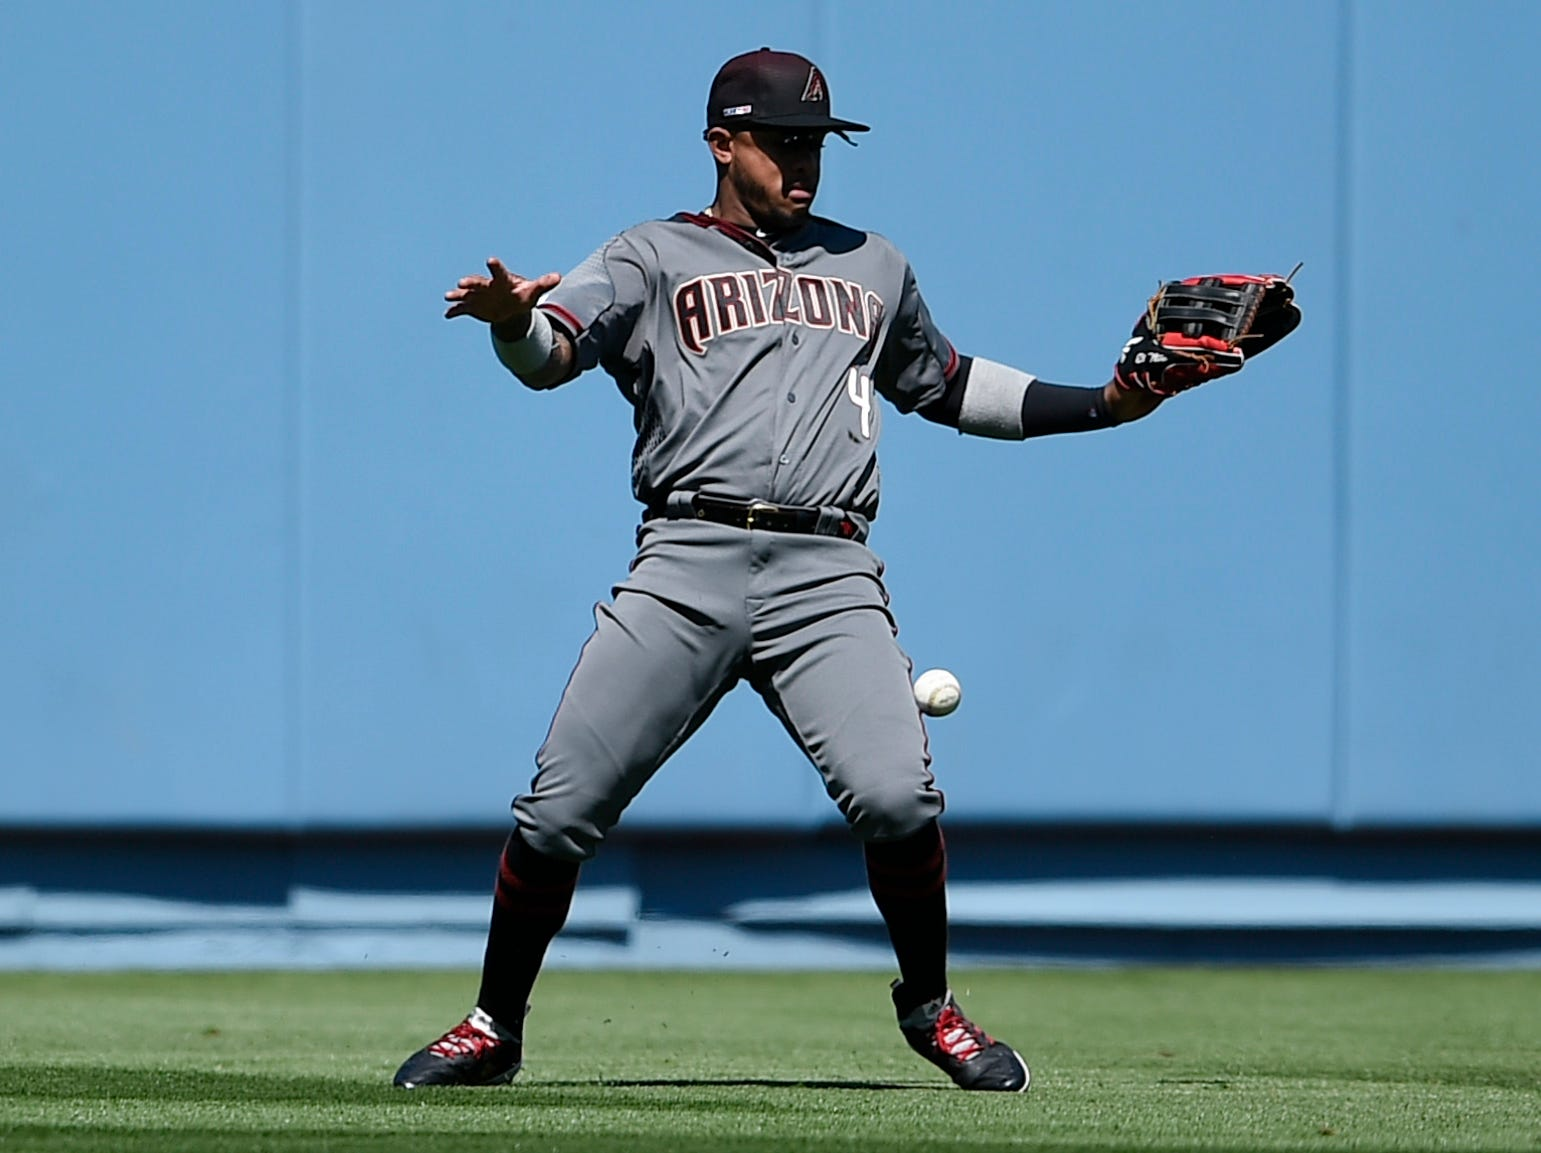 Mar 28, 2019; Los Angeles, CA, USA; Arizona Diamondbacks center fielder Ketel Marte (4) mishandles a ball hit by Los Angeles Dodgers right fielder Cody Bellinger (not pictured) during the fourth inning at Dodger Stadium. Mandatory Credit: Kelvin Kuo-USA TODAY Sports